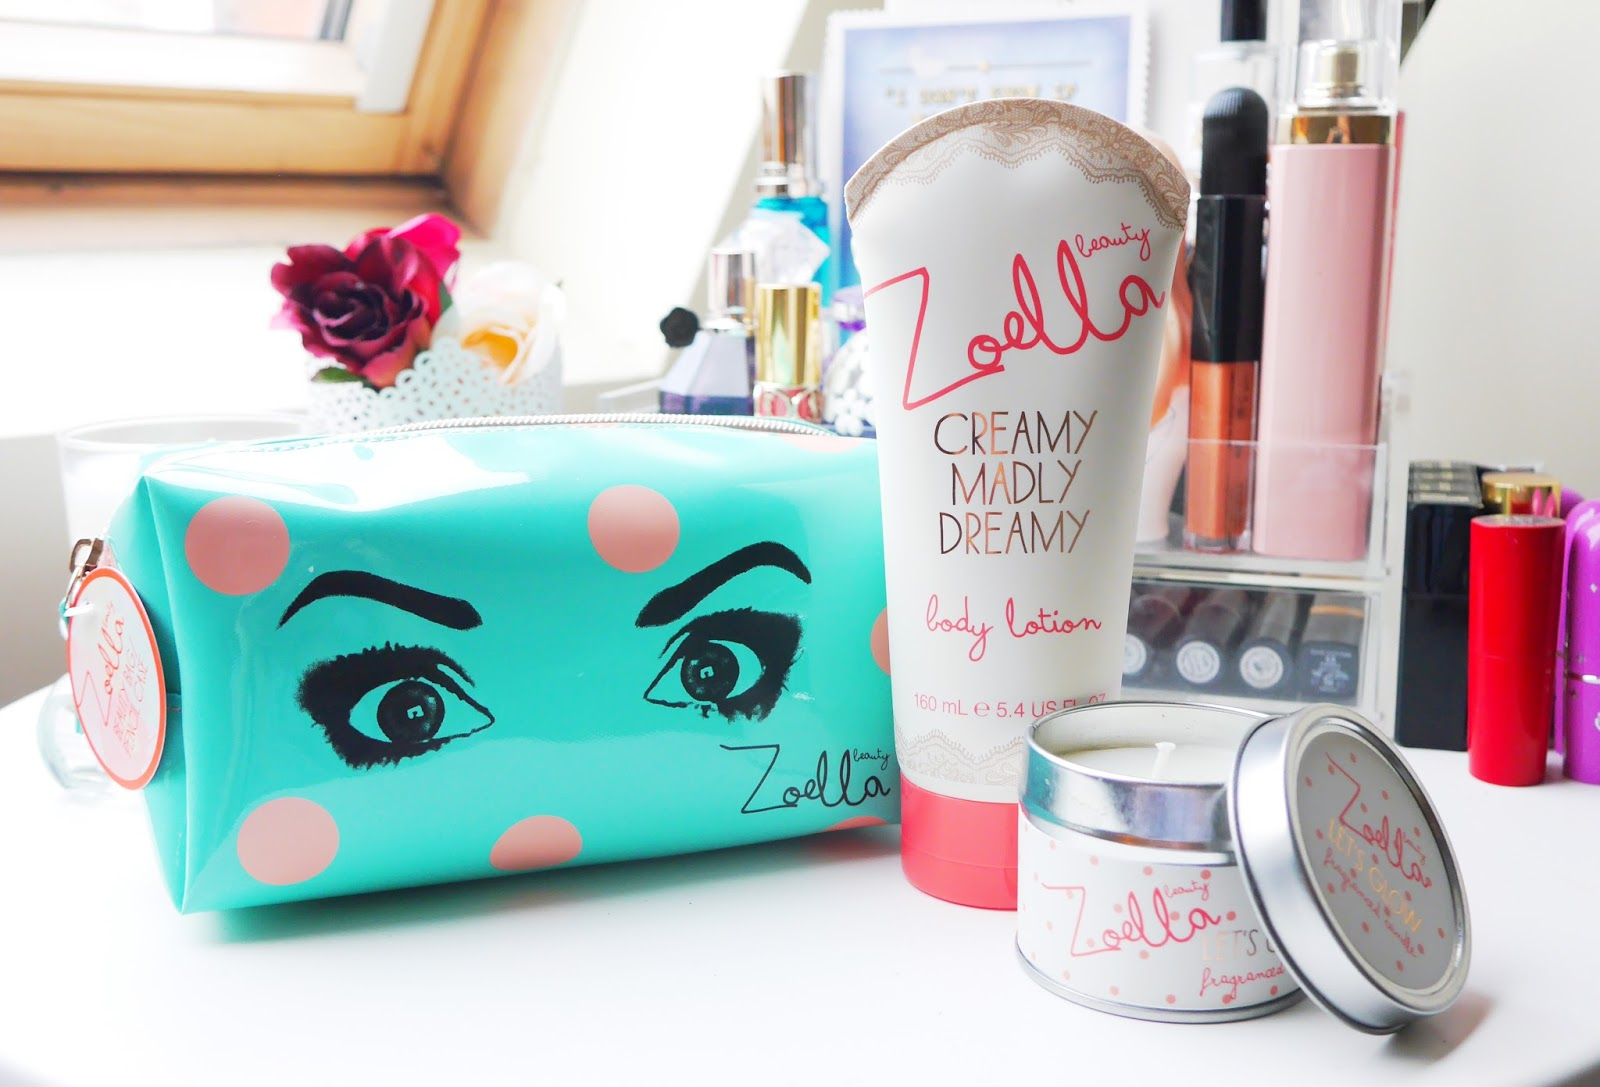 Zoella beauty by Zoella